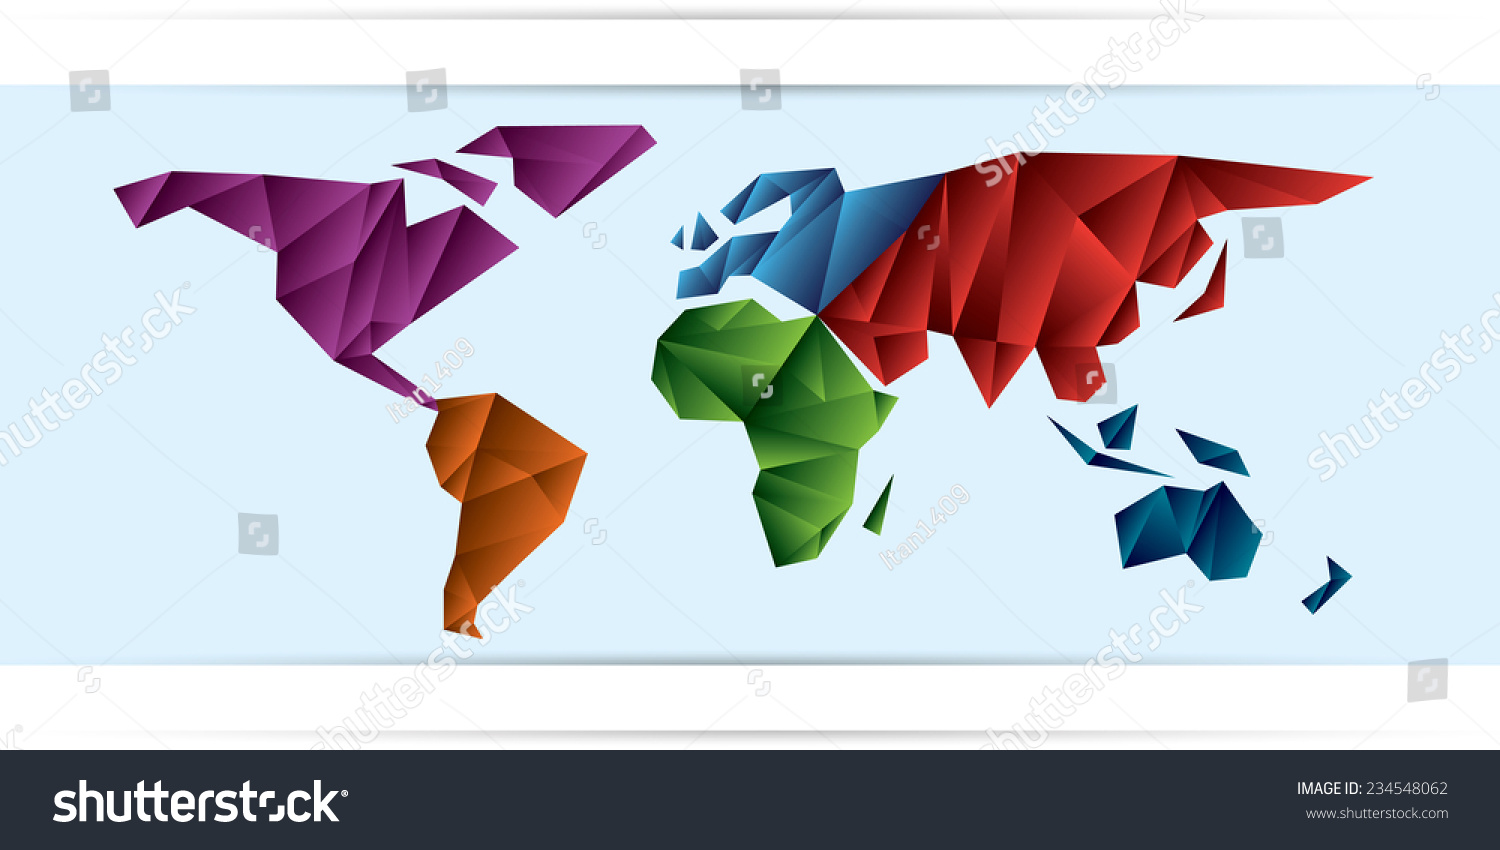 World map frozen triangles continents different stock vector world map frozen triangles of continents different color gumiabroncs Gallery